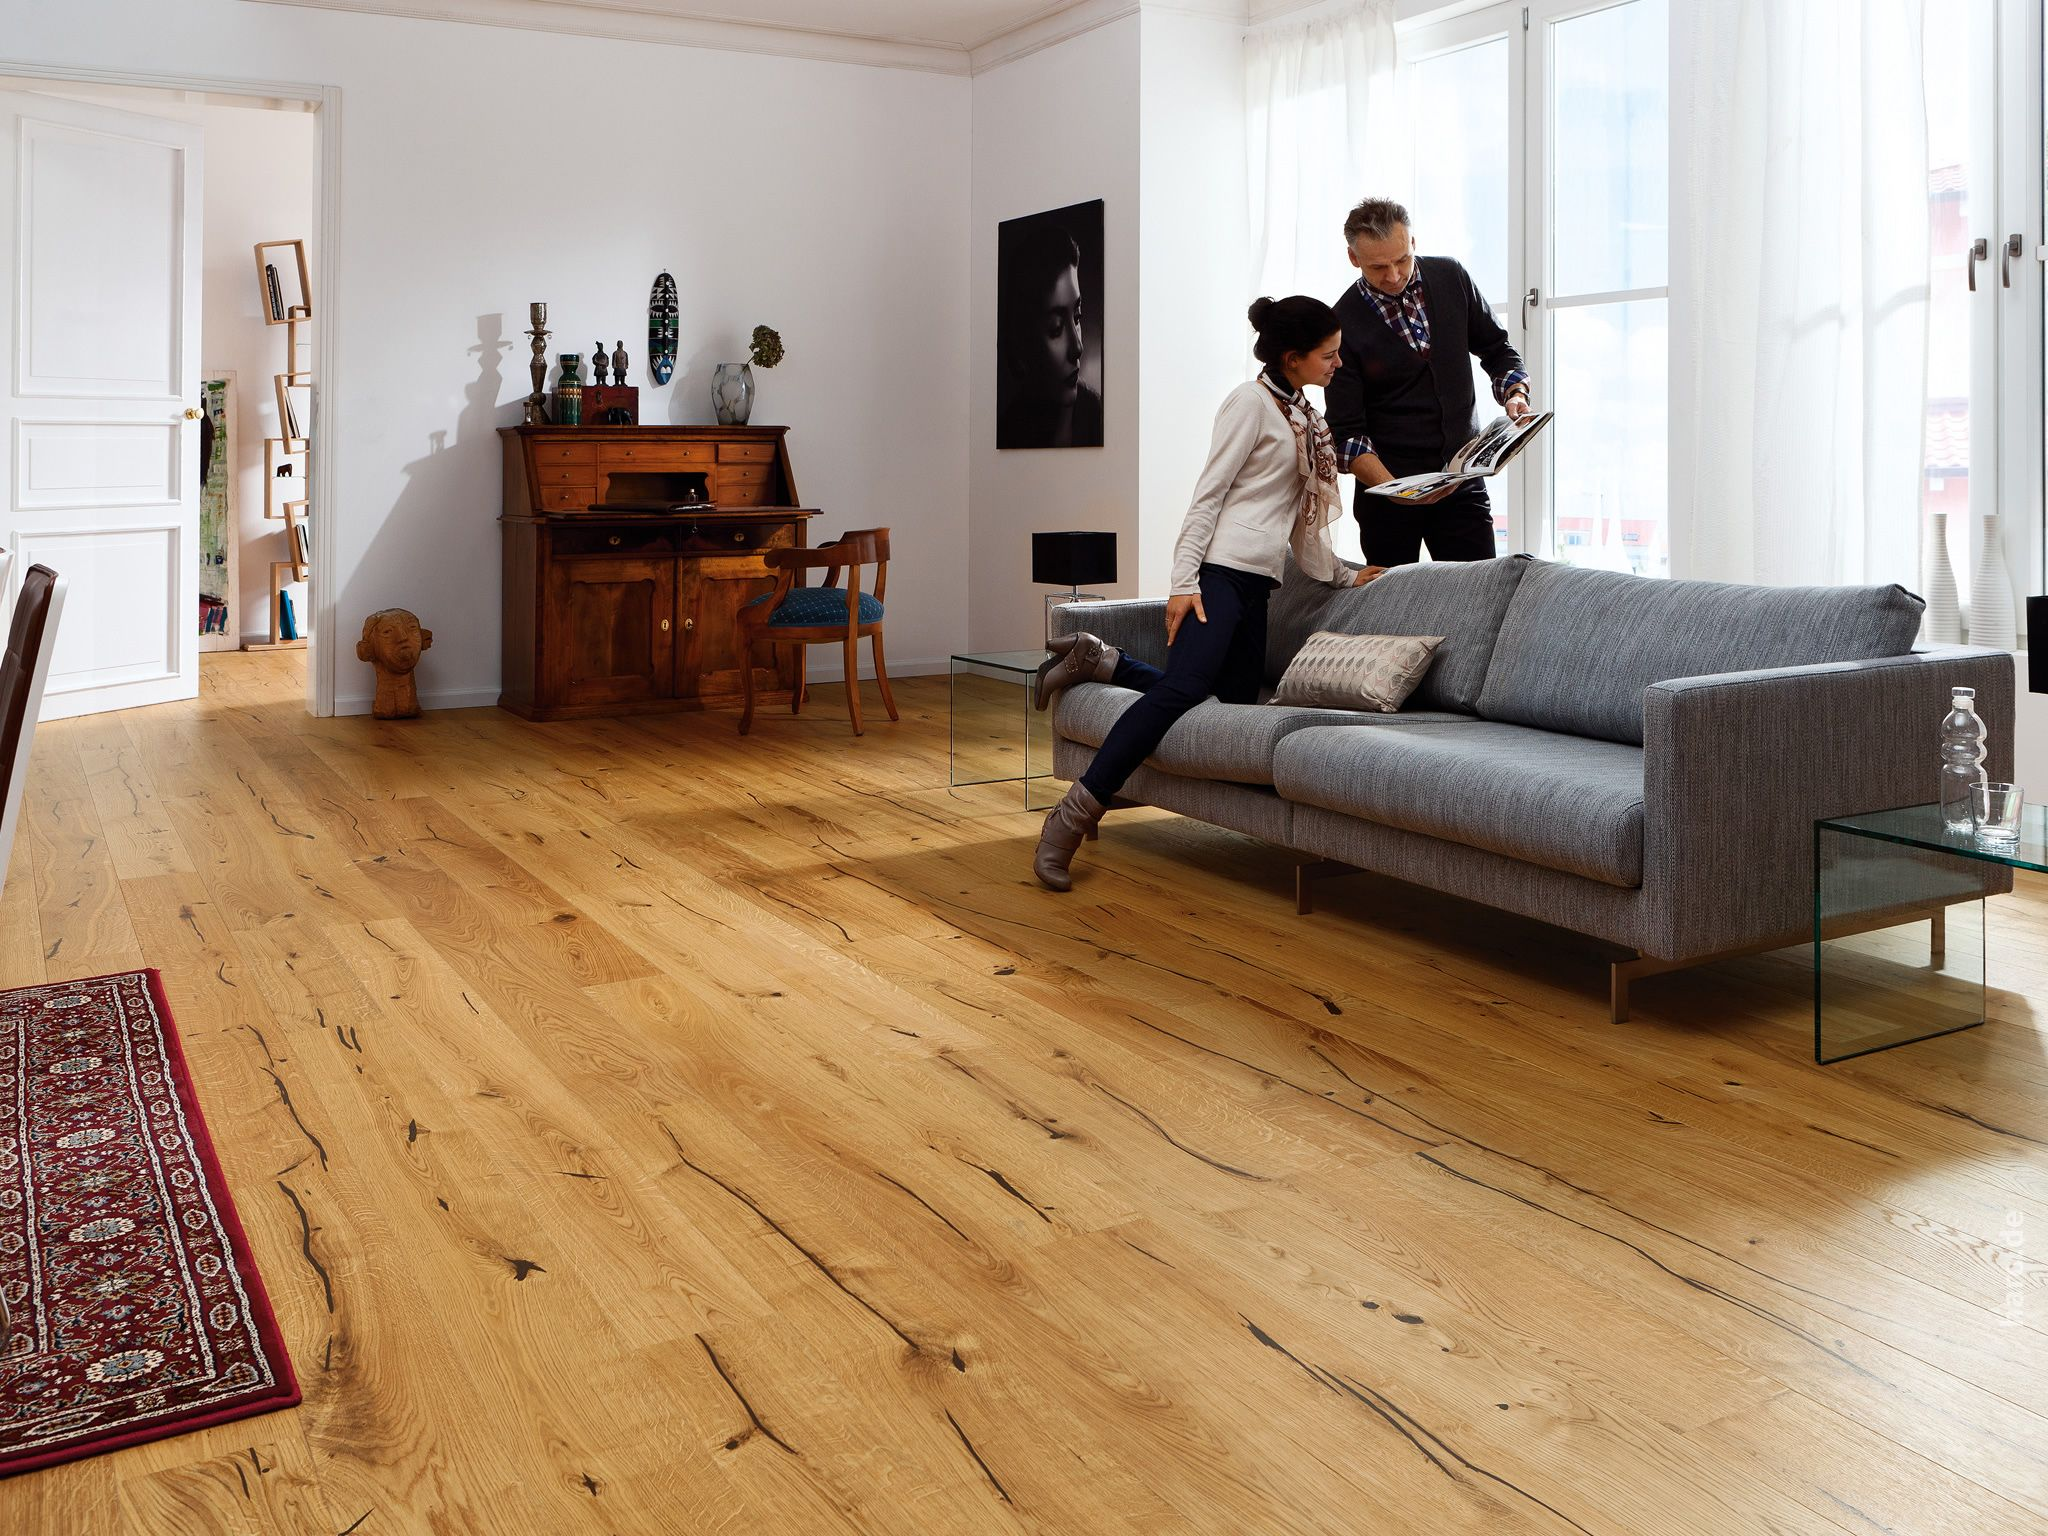 Haro Teppiche Preise Haro Parquet 4000 Plank 1 Strip 4v Oak Alabama Brushed